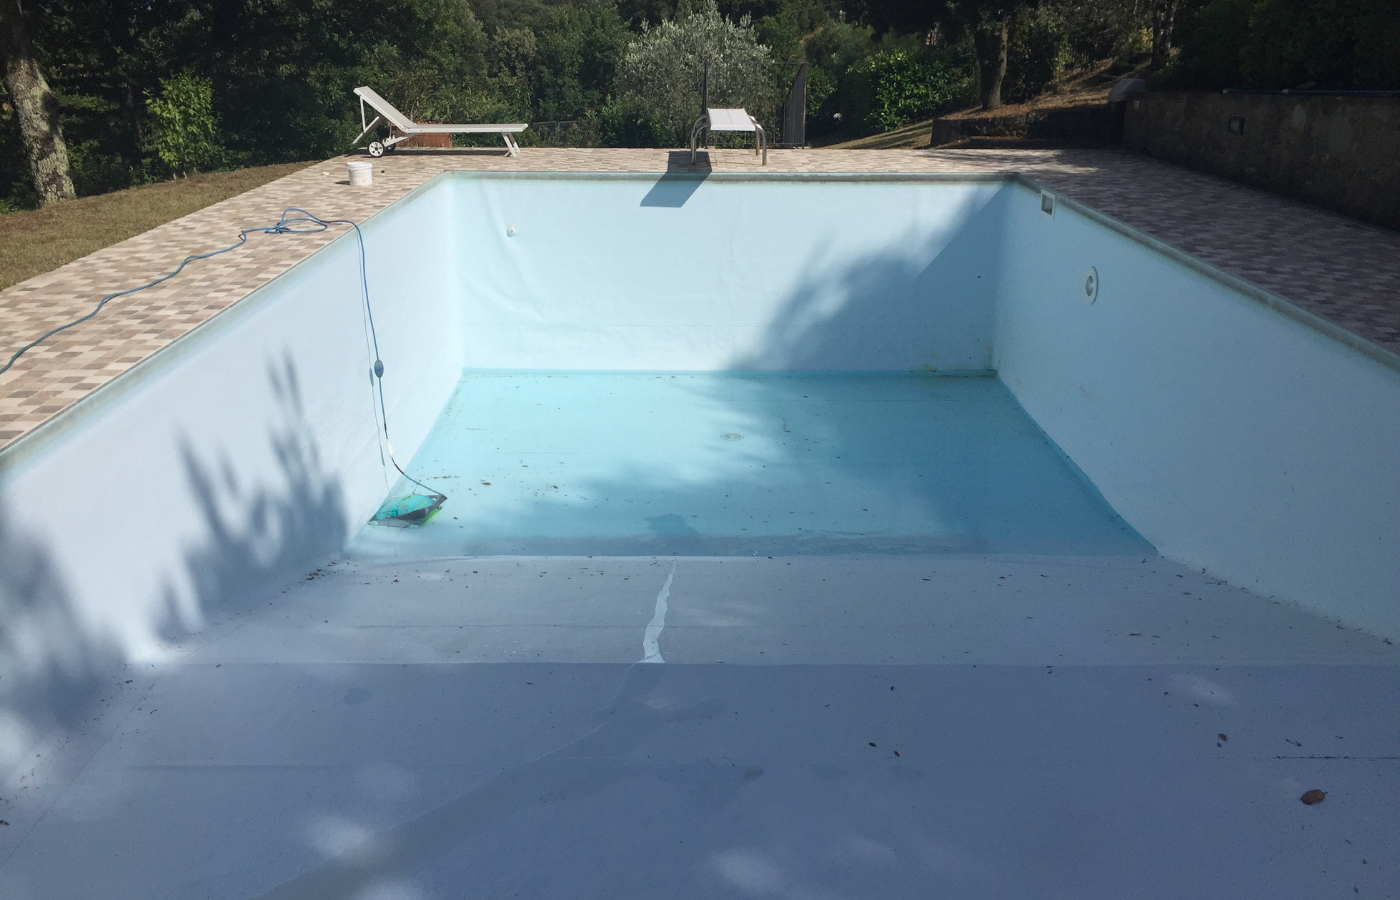 can i use rainwater to fill my pool